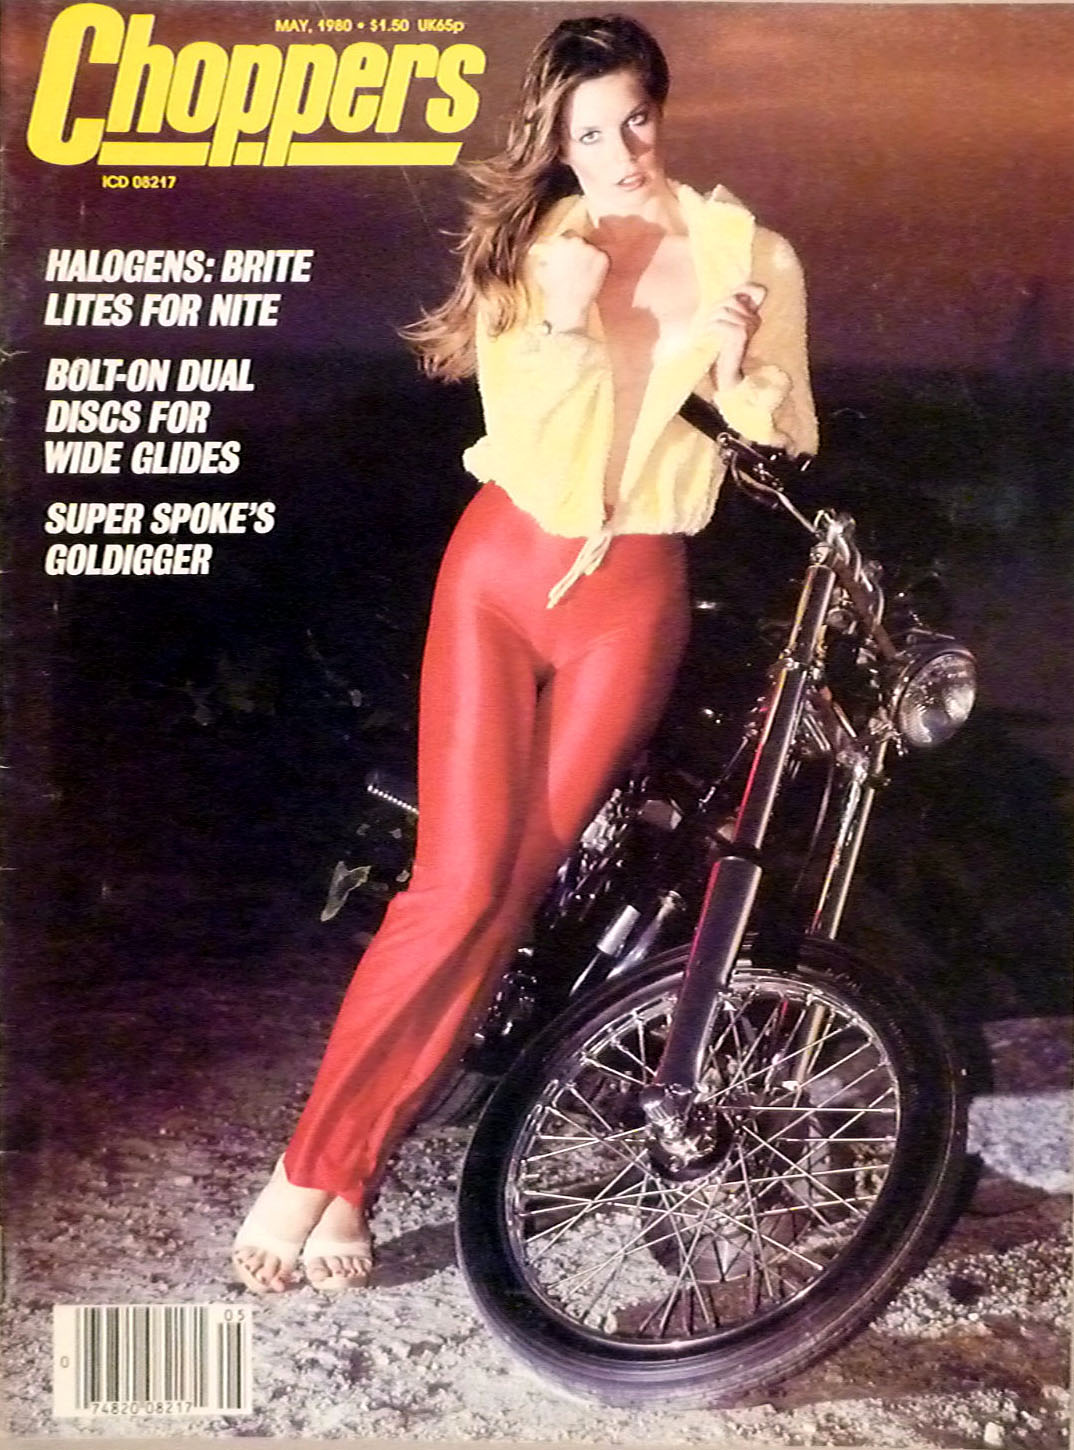 choppers magazine cover 1980 red leather pants